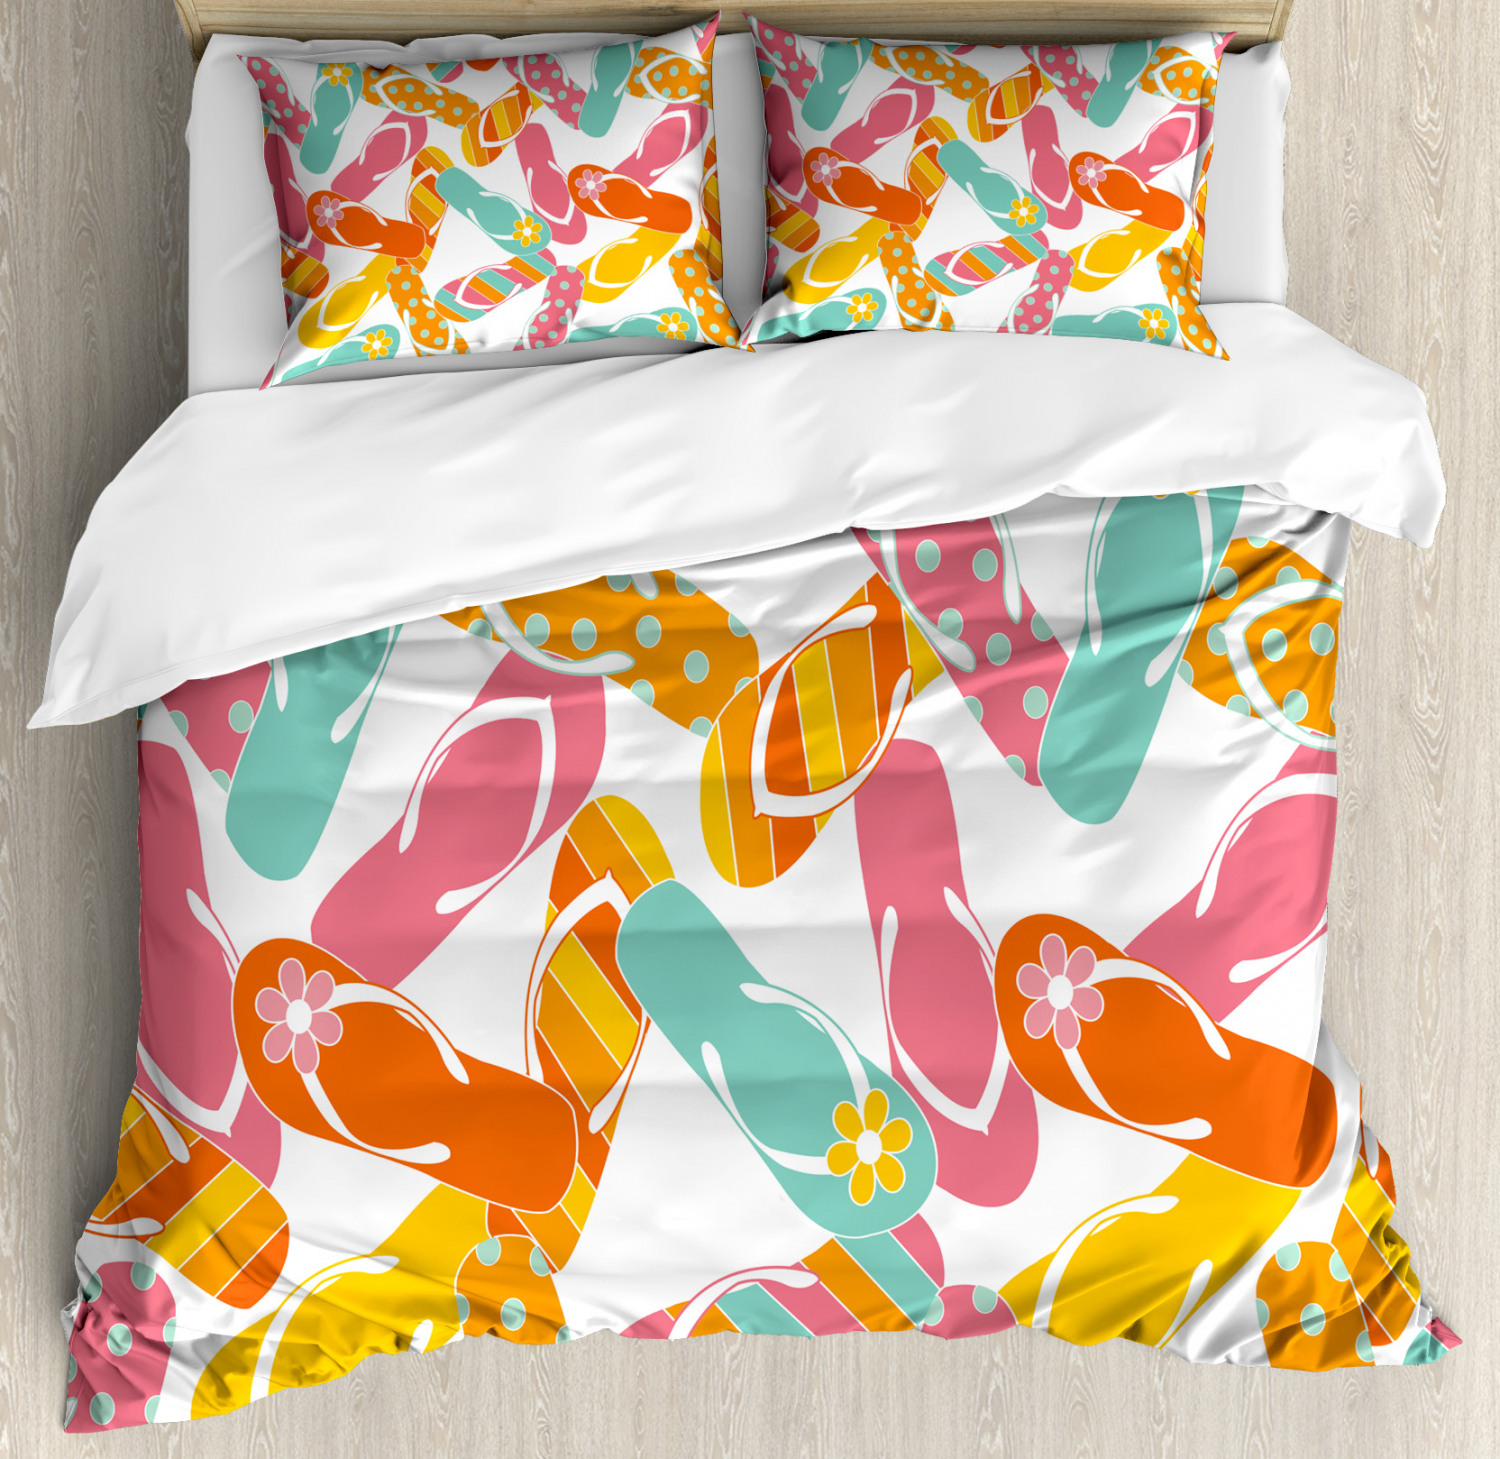 colorful Duvet Cover Set with Pillow Shams Summer Holiday Sandals Print